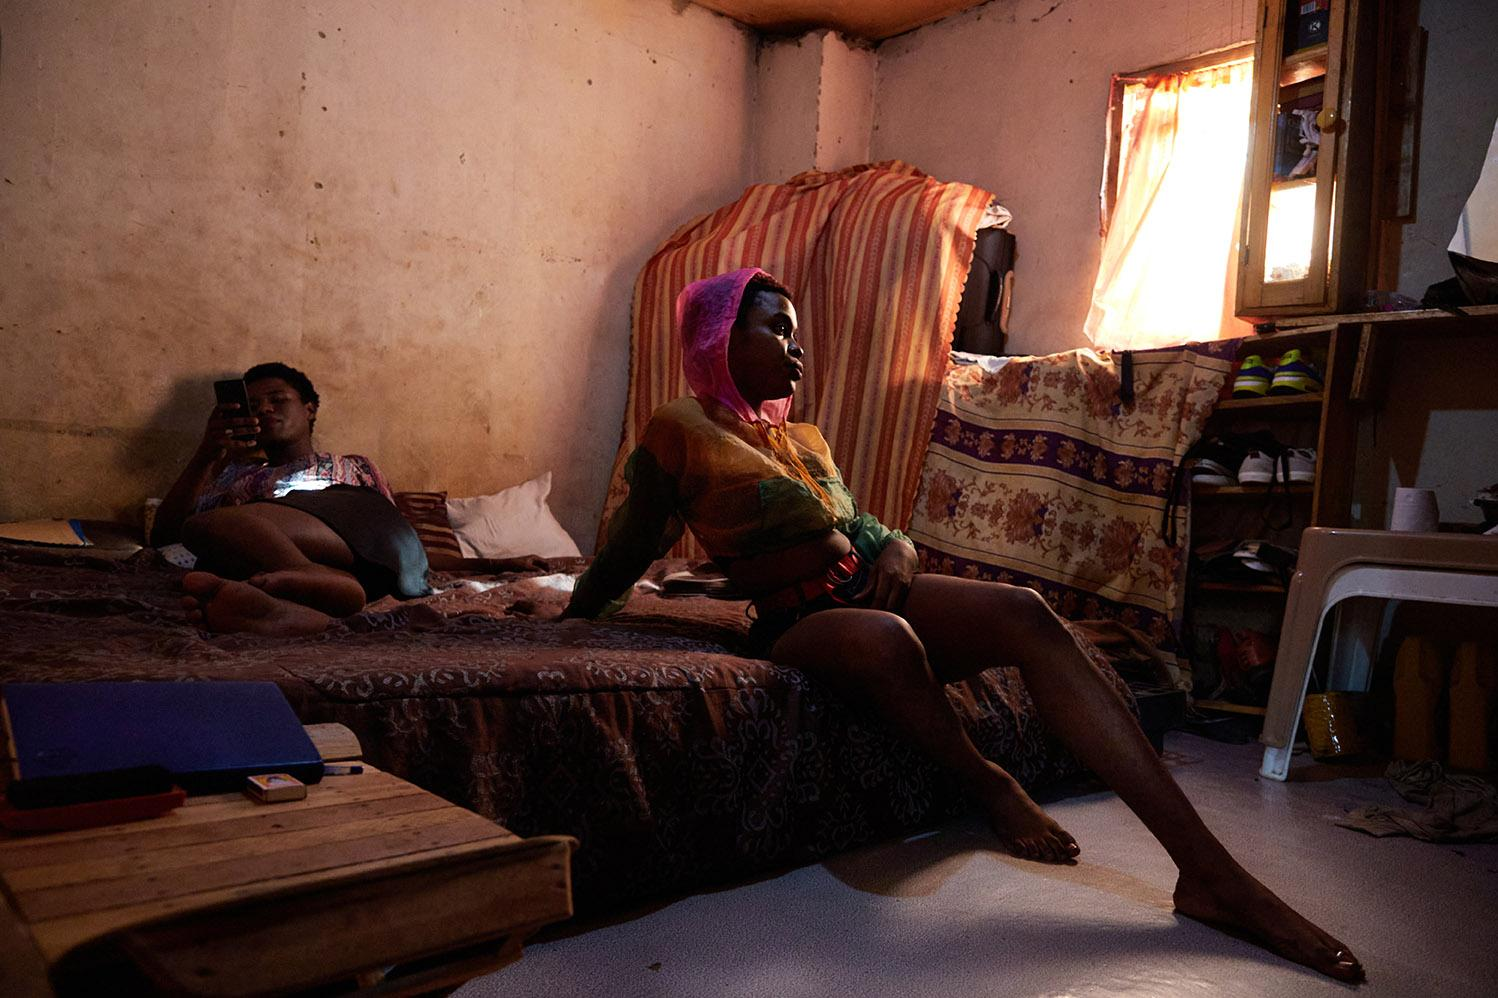 """Vinka Silk (Transwoman) """"Policies are there, they just need to be enforced and implemented. If we talk of equality, freedom of speech and expression, plus access to medical care for all Ugandans, why can't this apply to us the LGBT as well! Are we not Ugandans? Are we not human beings? I was born in this government, and have grown to see what it is. I really just want to see change, maybe as LGBT, we might find some hope in our country"""""""